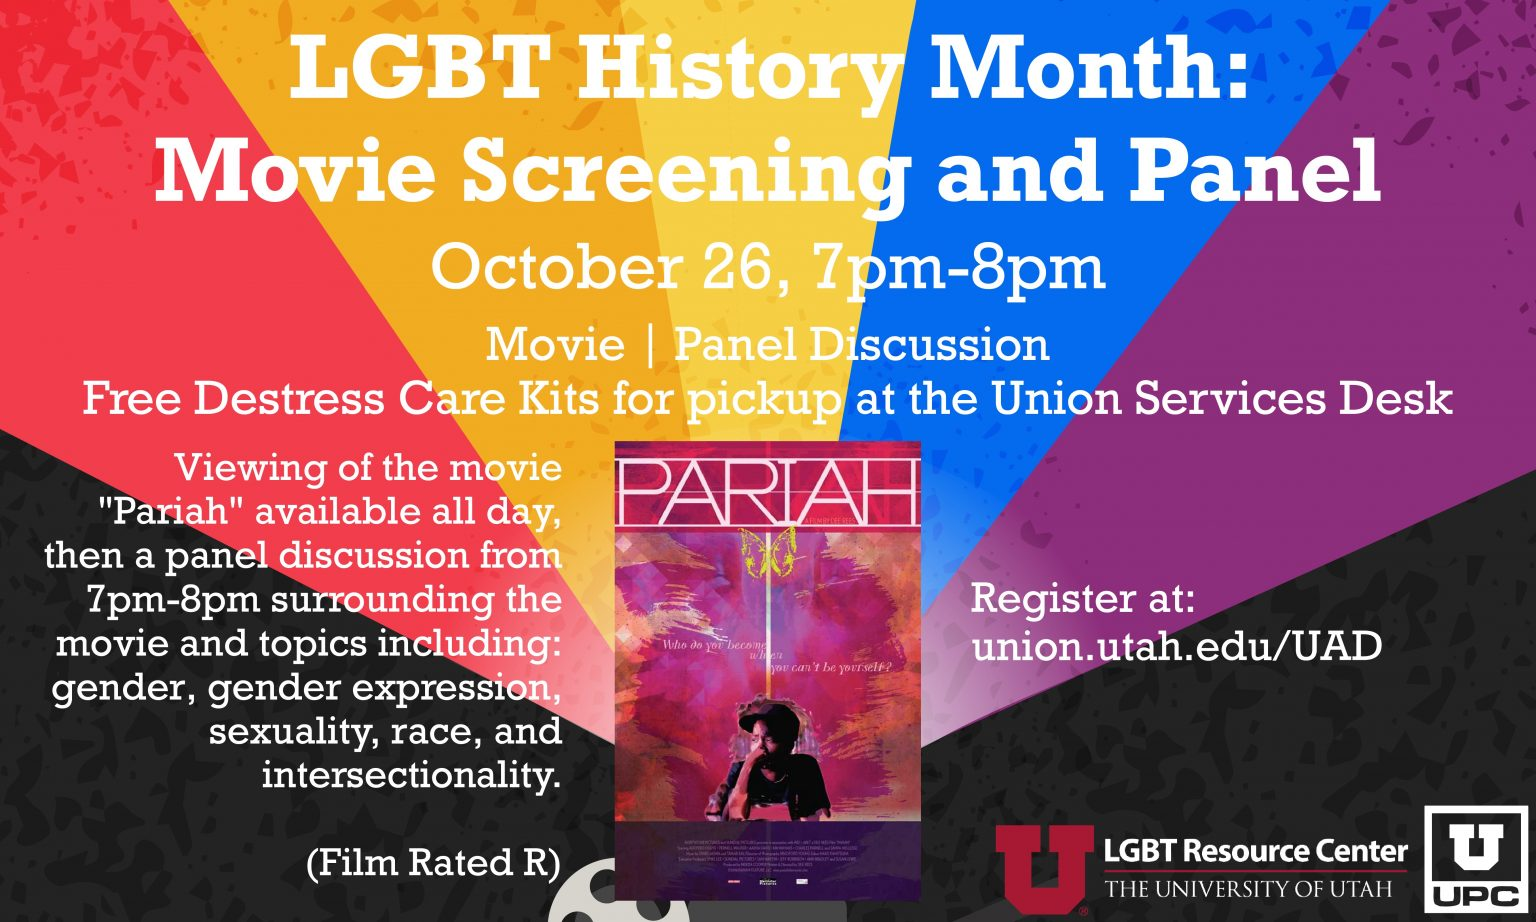 LGBT History Month: Movie Screening and Panel